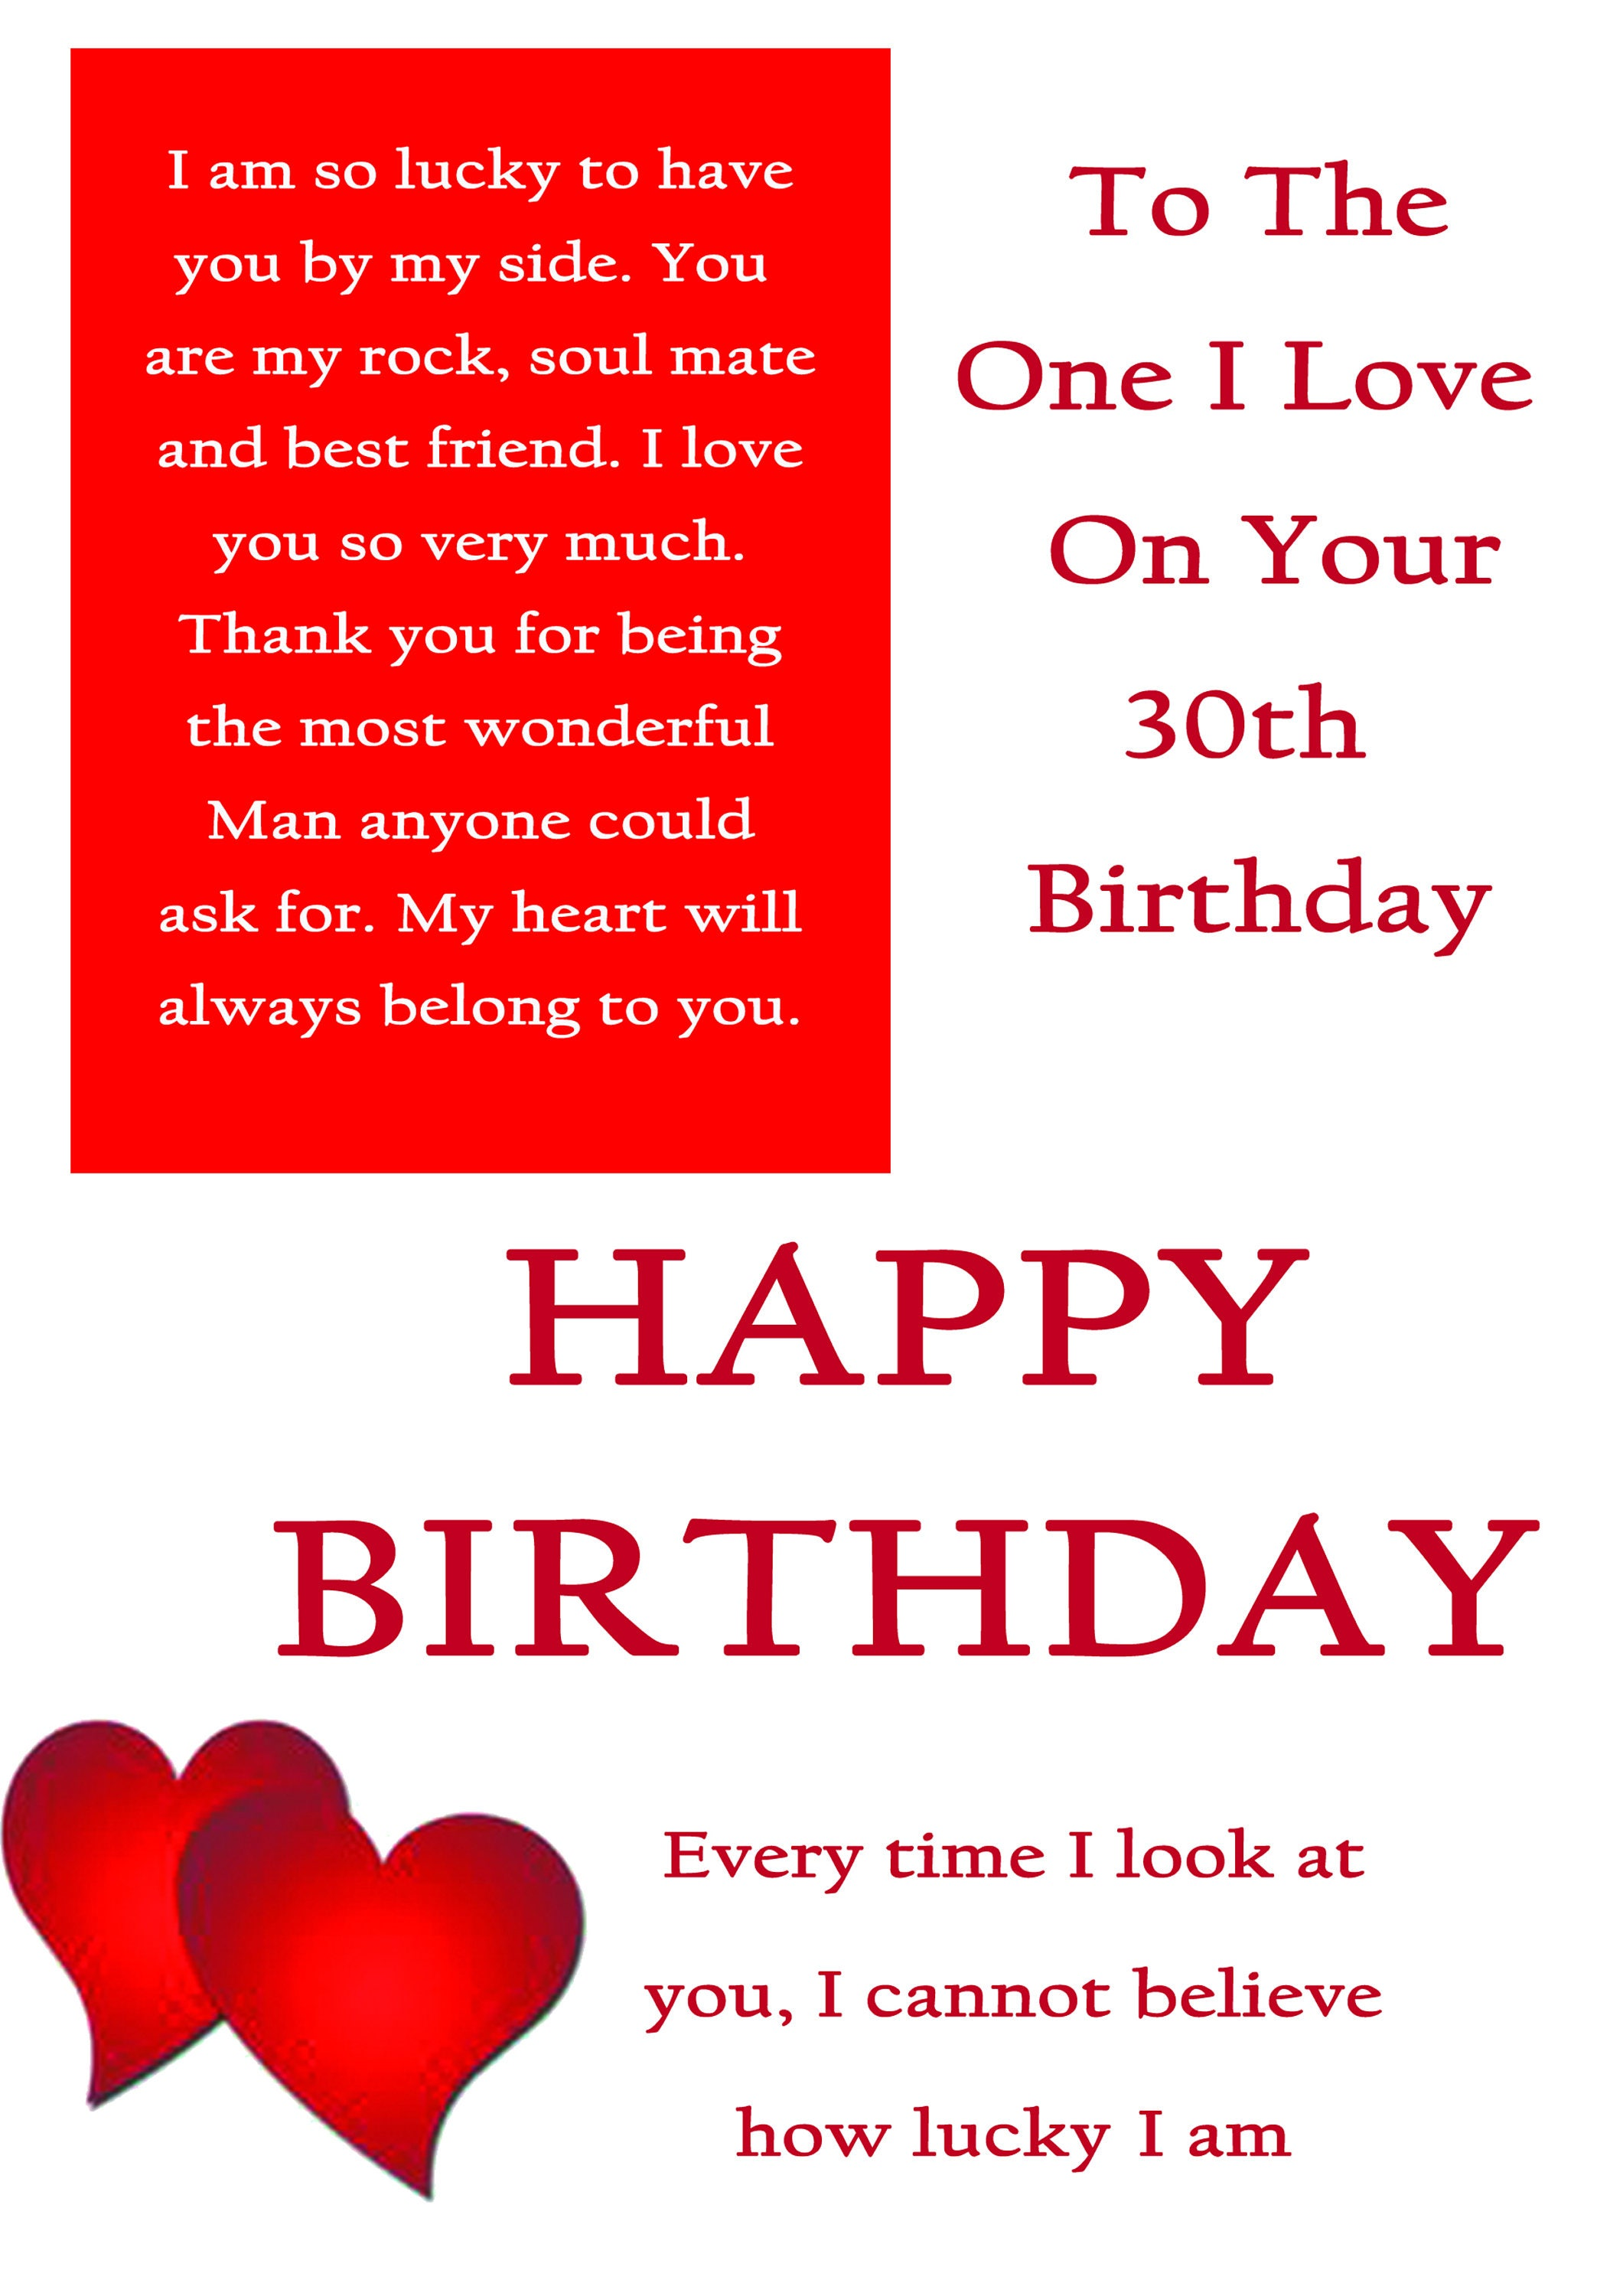 One I Love 30 Birthday Card With Removable Laminate